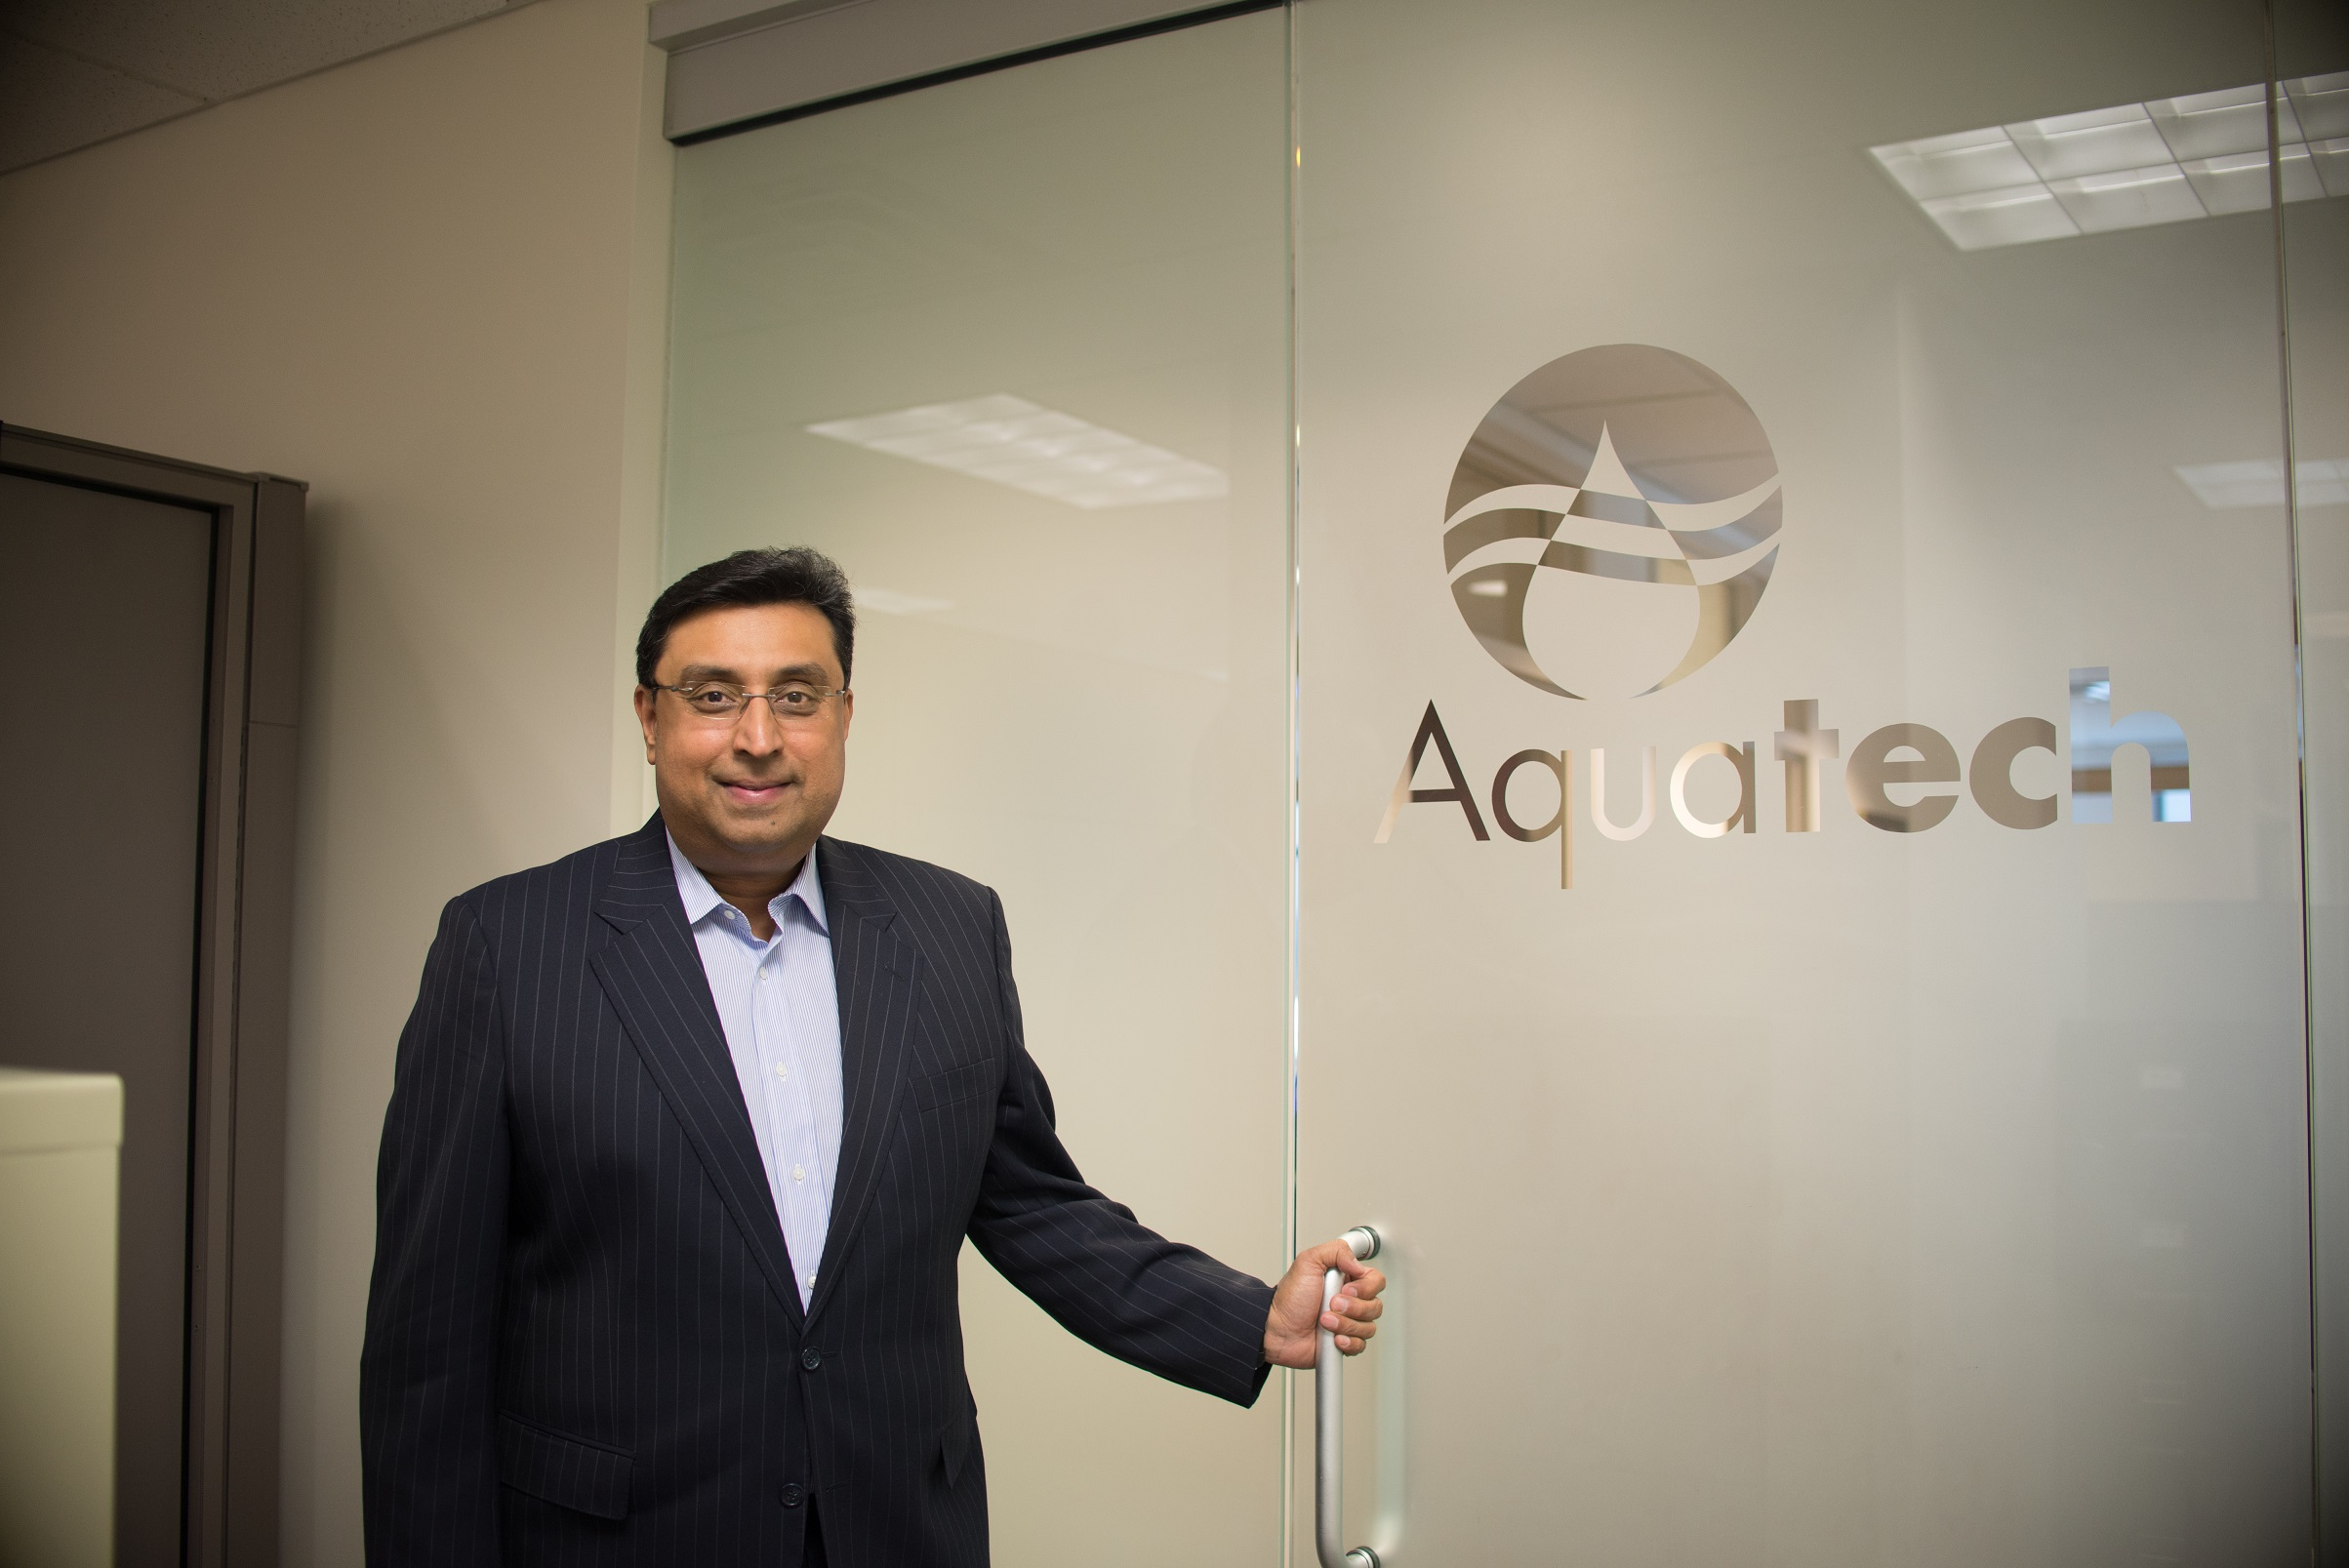 Aquatech CEO Venkee Sharma Appointed to the United States - India CEO Forum